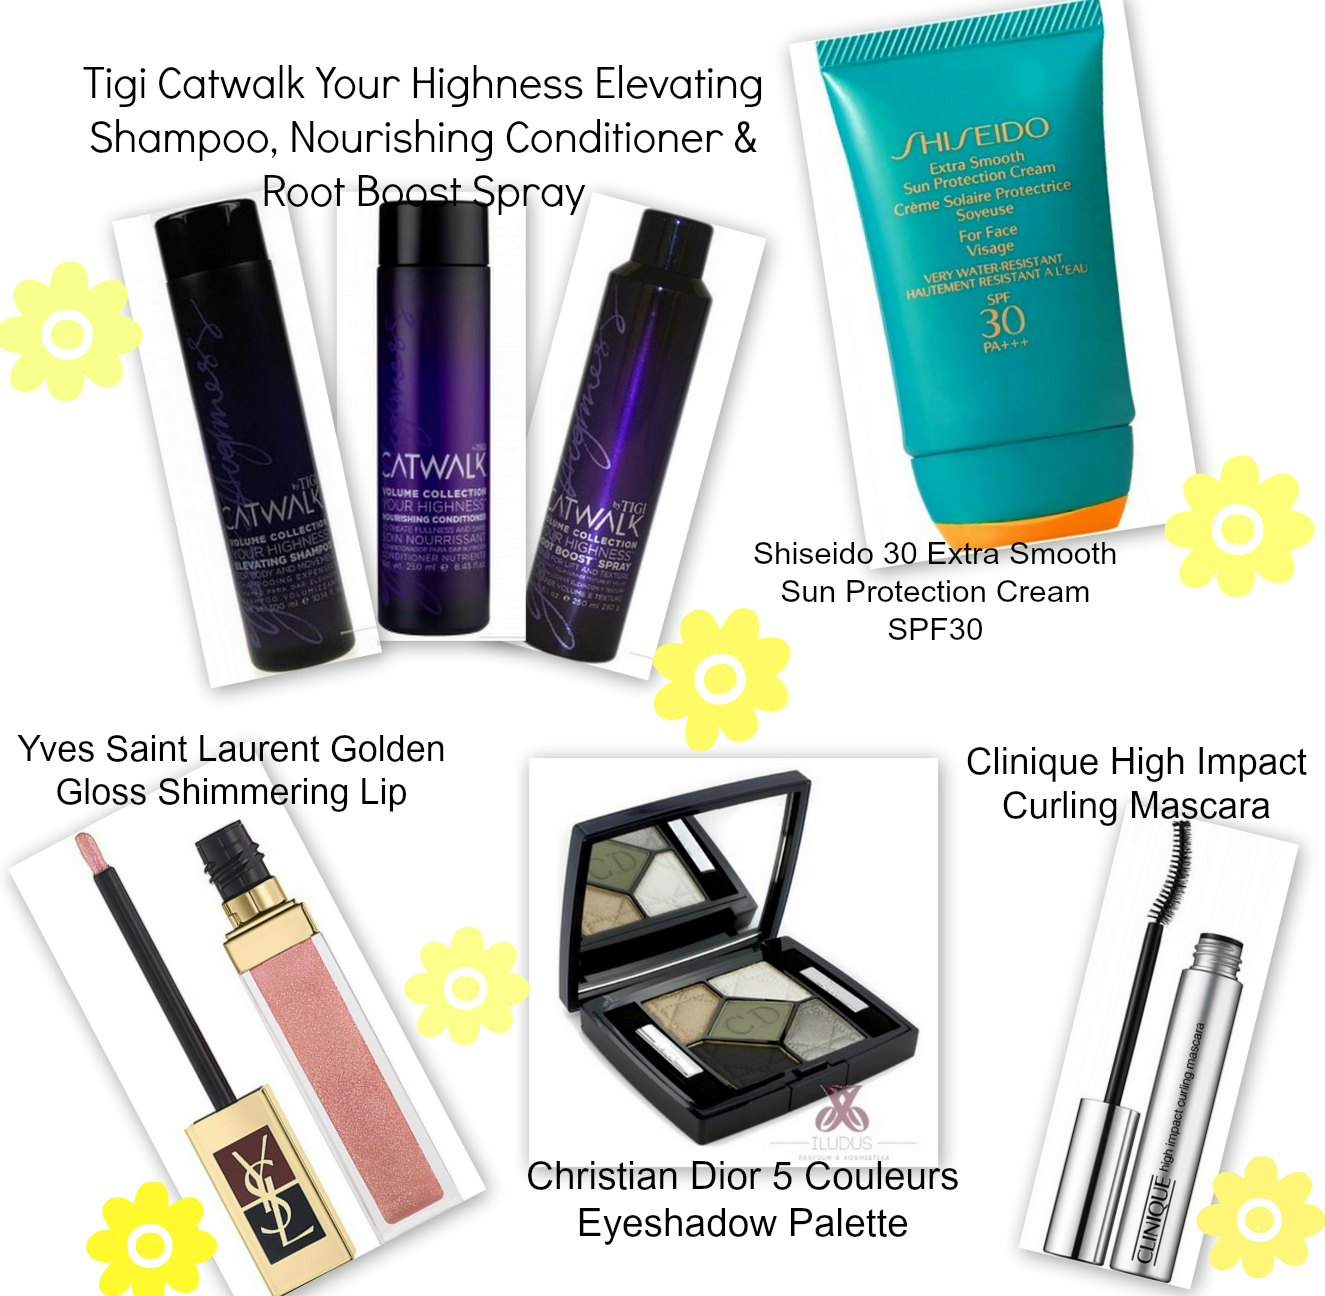 Tigi Catwalk Your Highness haircare products, Shiseido 30 Extra Smooth Sun Protection Cream SPF30, Yves Saint Laurent Golden Gloss Shimmer Lip, Christian Dior 5 Couleurs Eyeshadow Palette, Clinique High Impact Curling Mascara